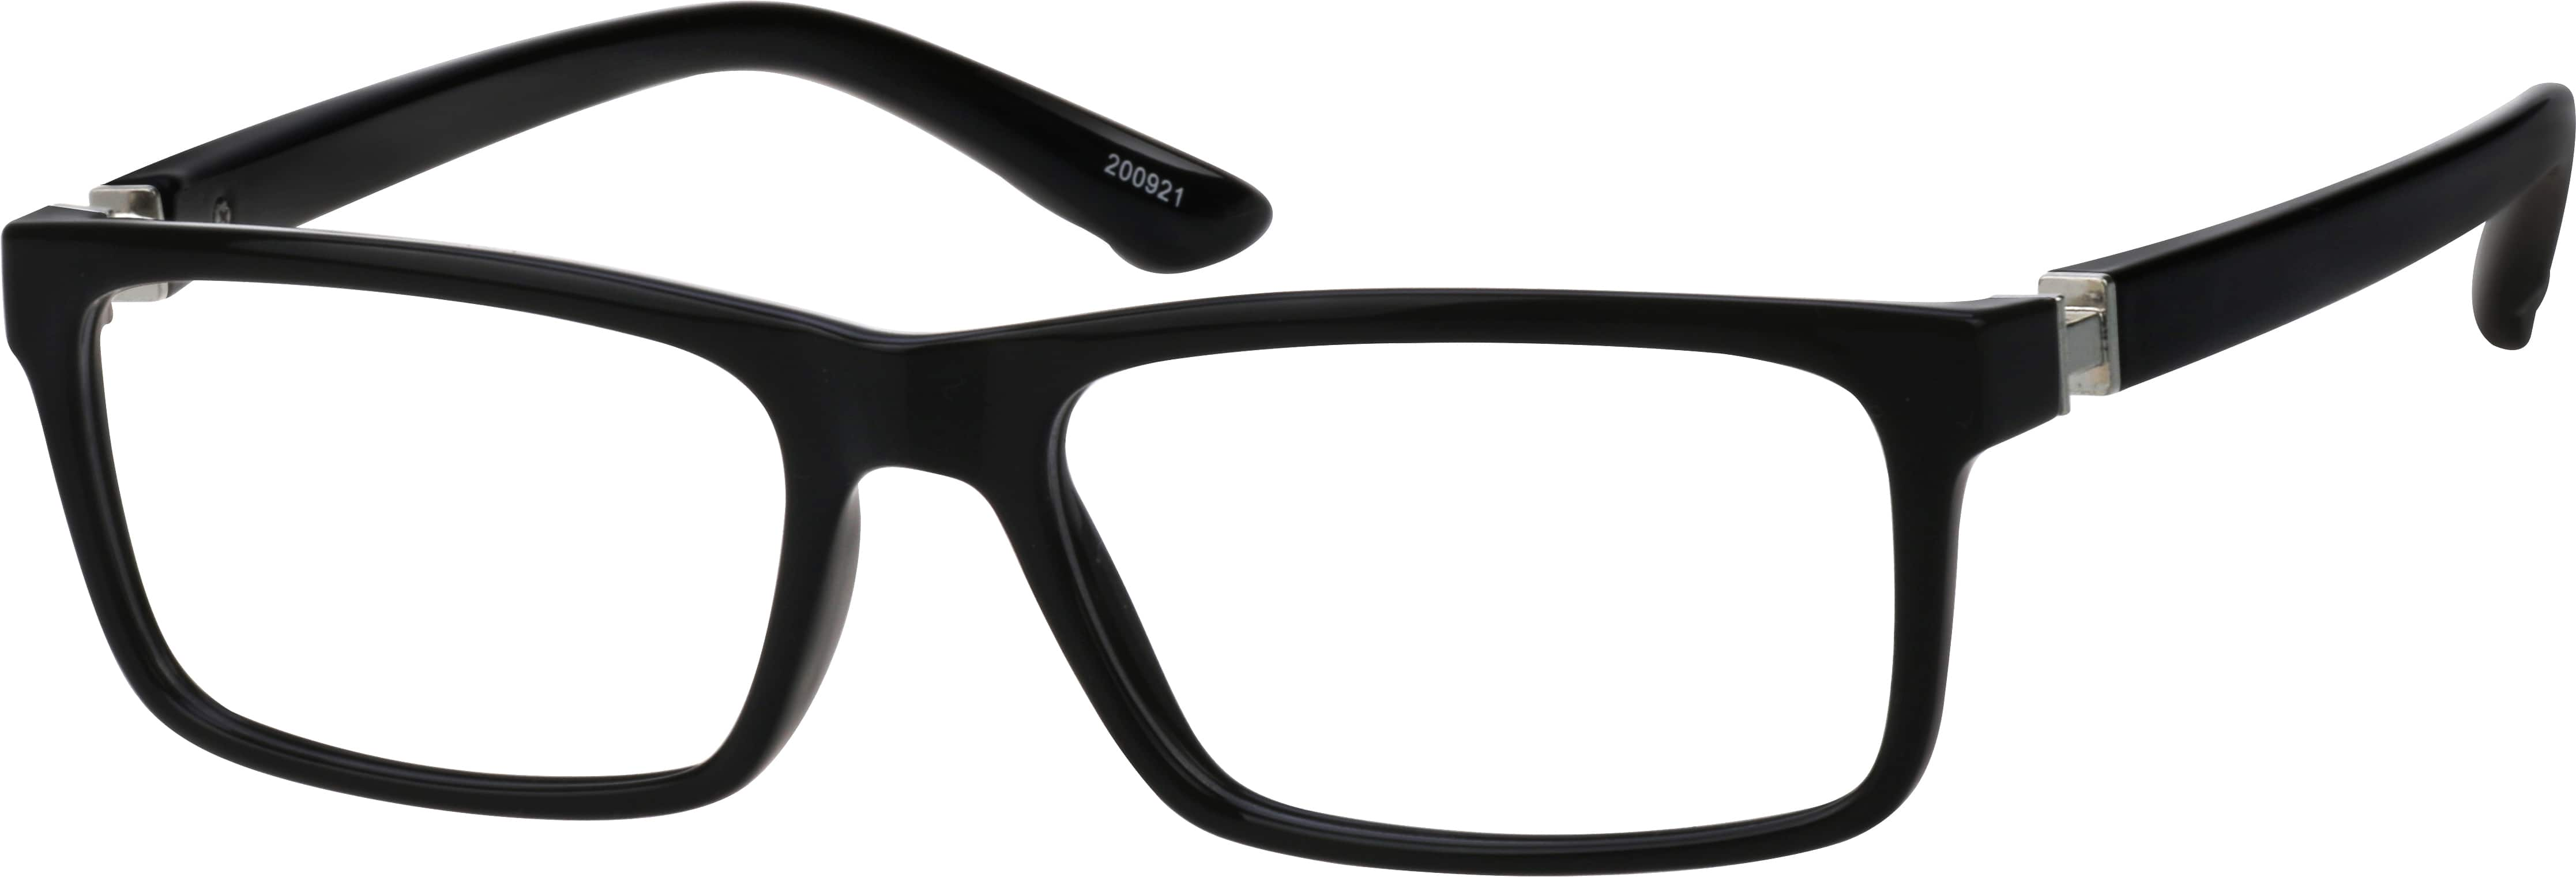 flexible-plastic-full-rim-eyeglass-frame-with-spring-hinges-200921